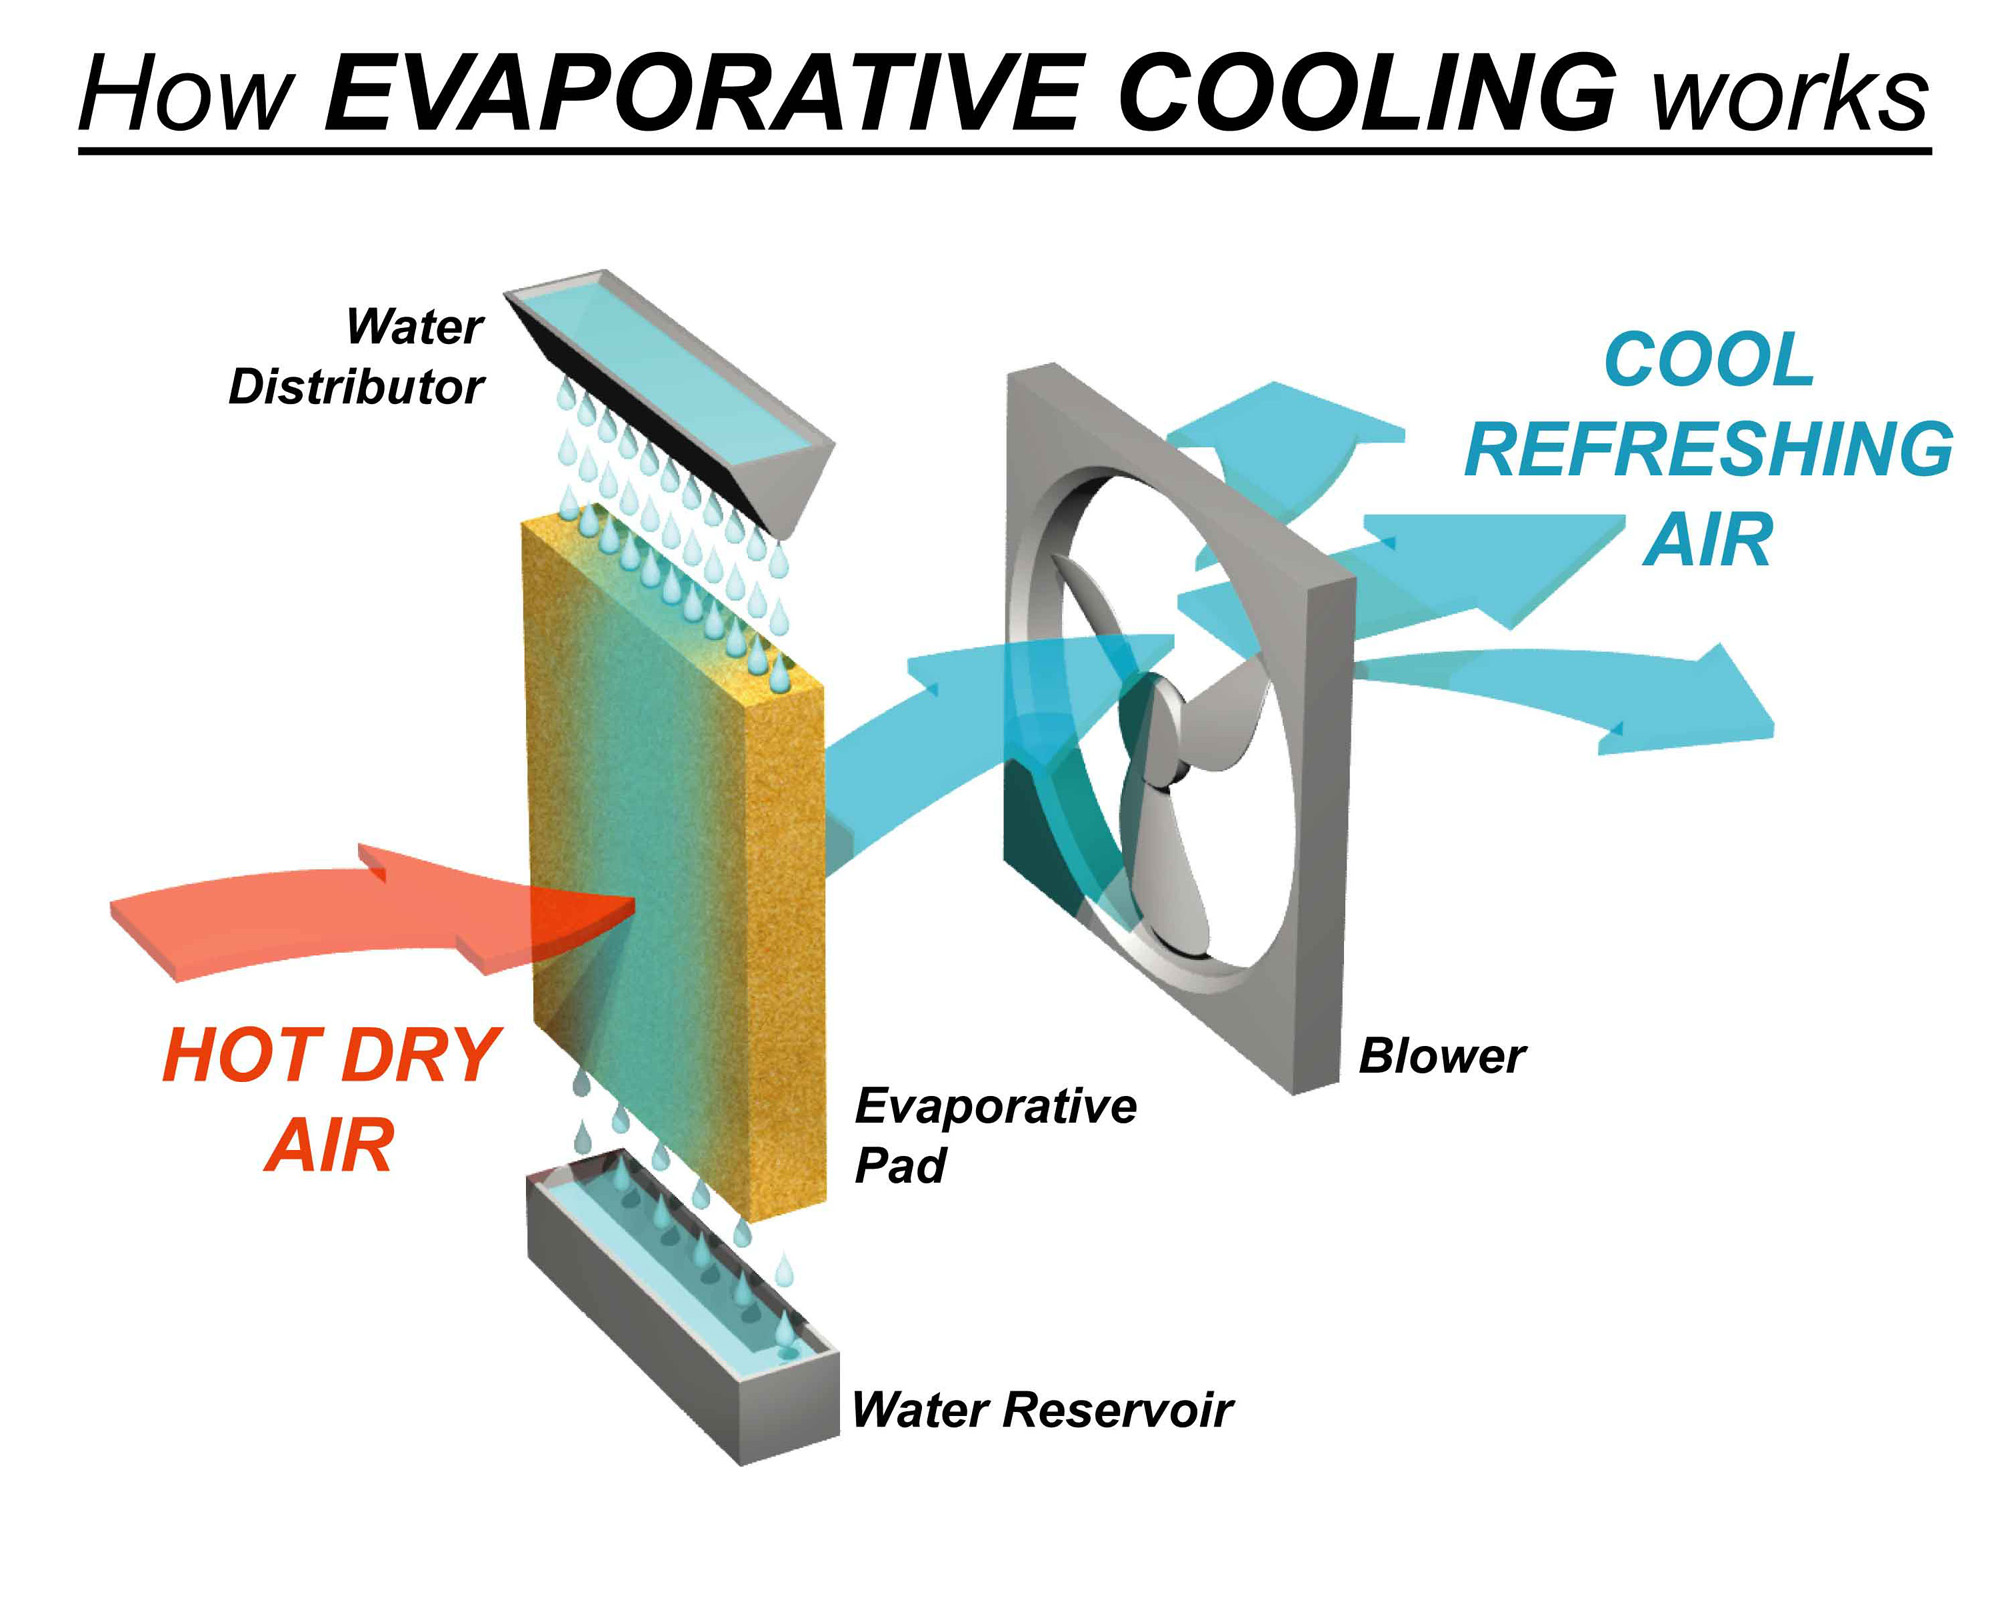 Split System vs Evaporative Cooling – What is the difference? #B63315